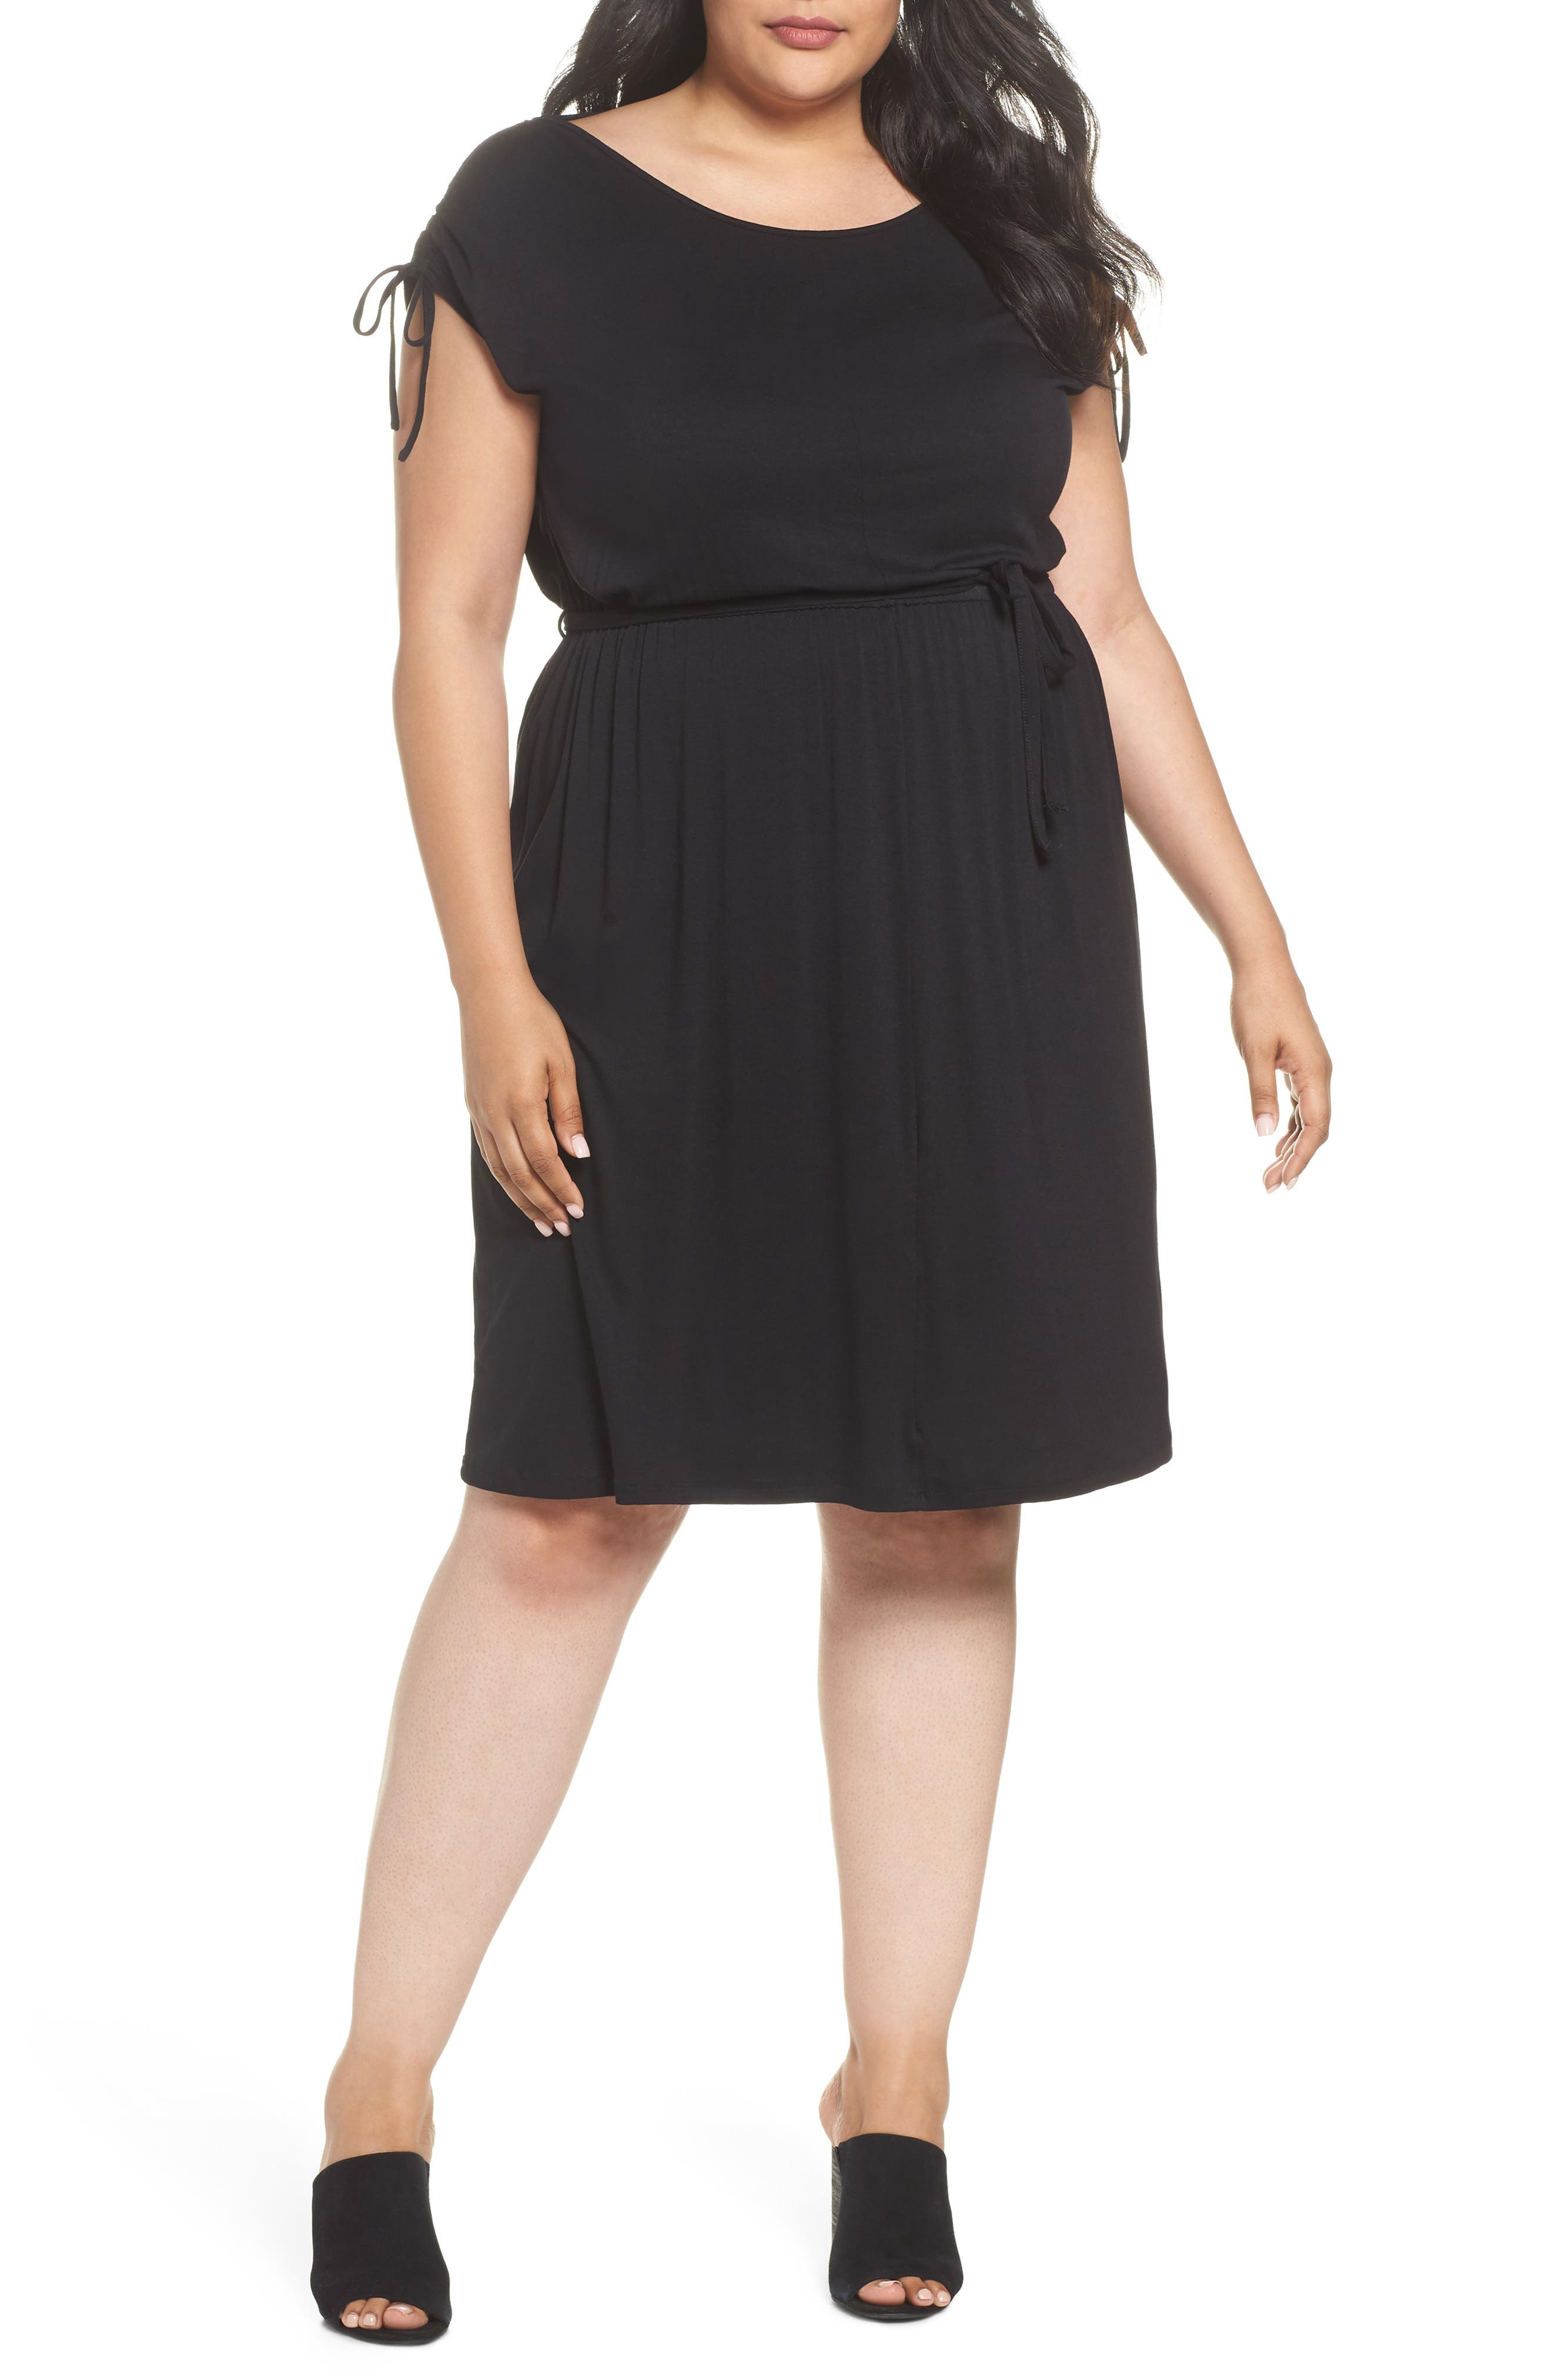 Alternate Image 1 Selected - Dorothy Perkins Stretch Jersey Midi Dress (Plus Size)